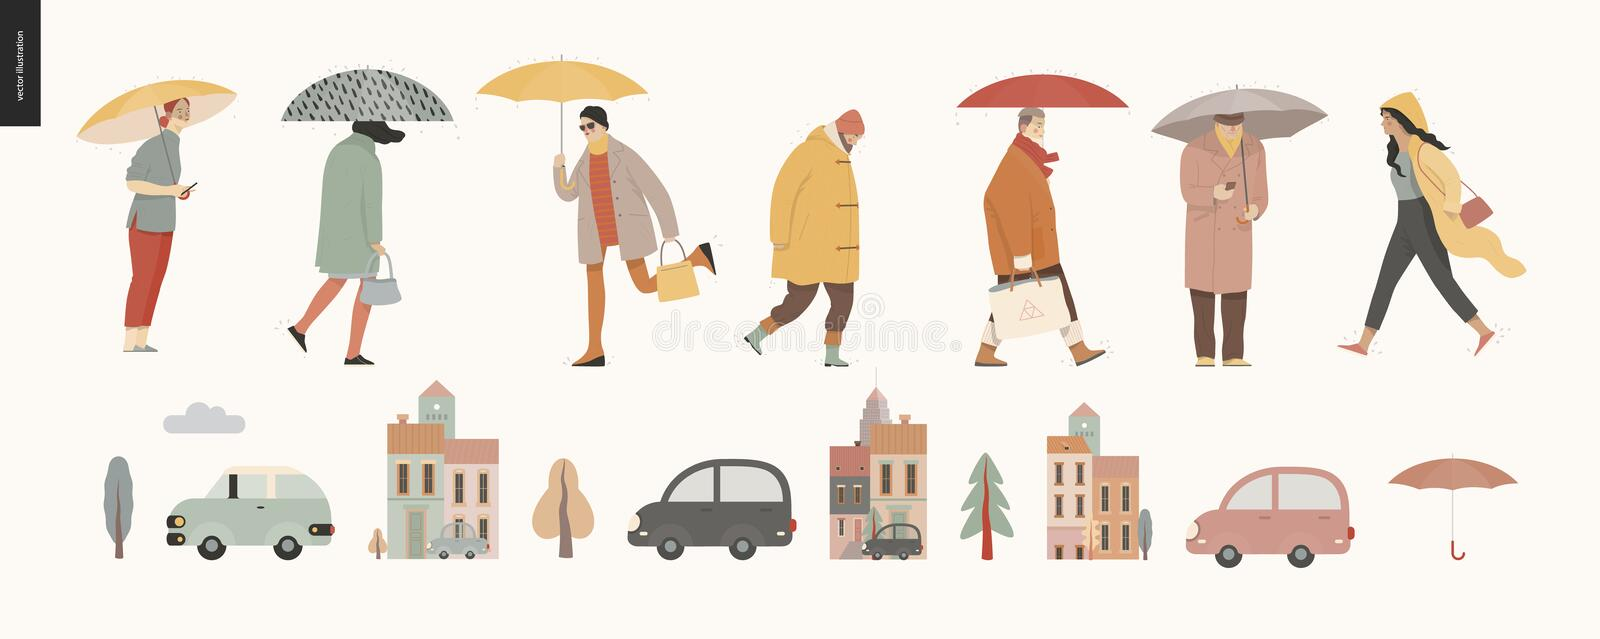 Rain - walking people set. Modern flat vector concept illustration of people with umbrella, walking or standing in the rain in the street, city houses and cars stock illustration